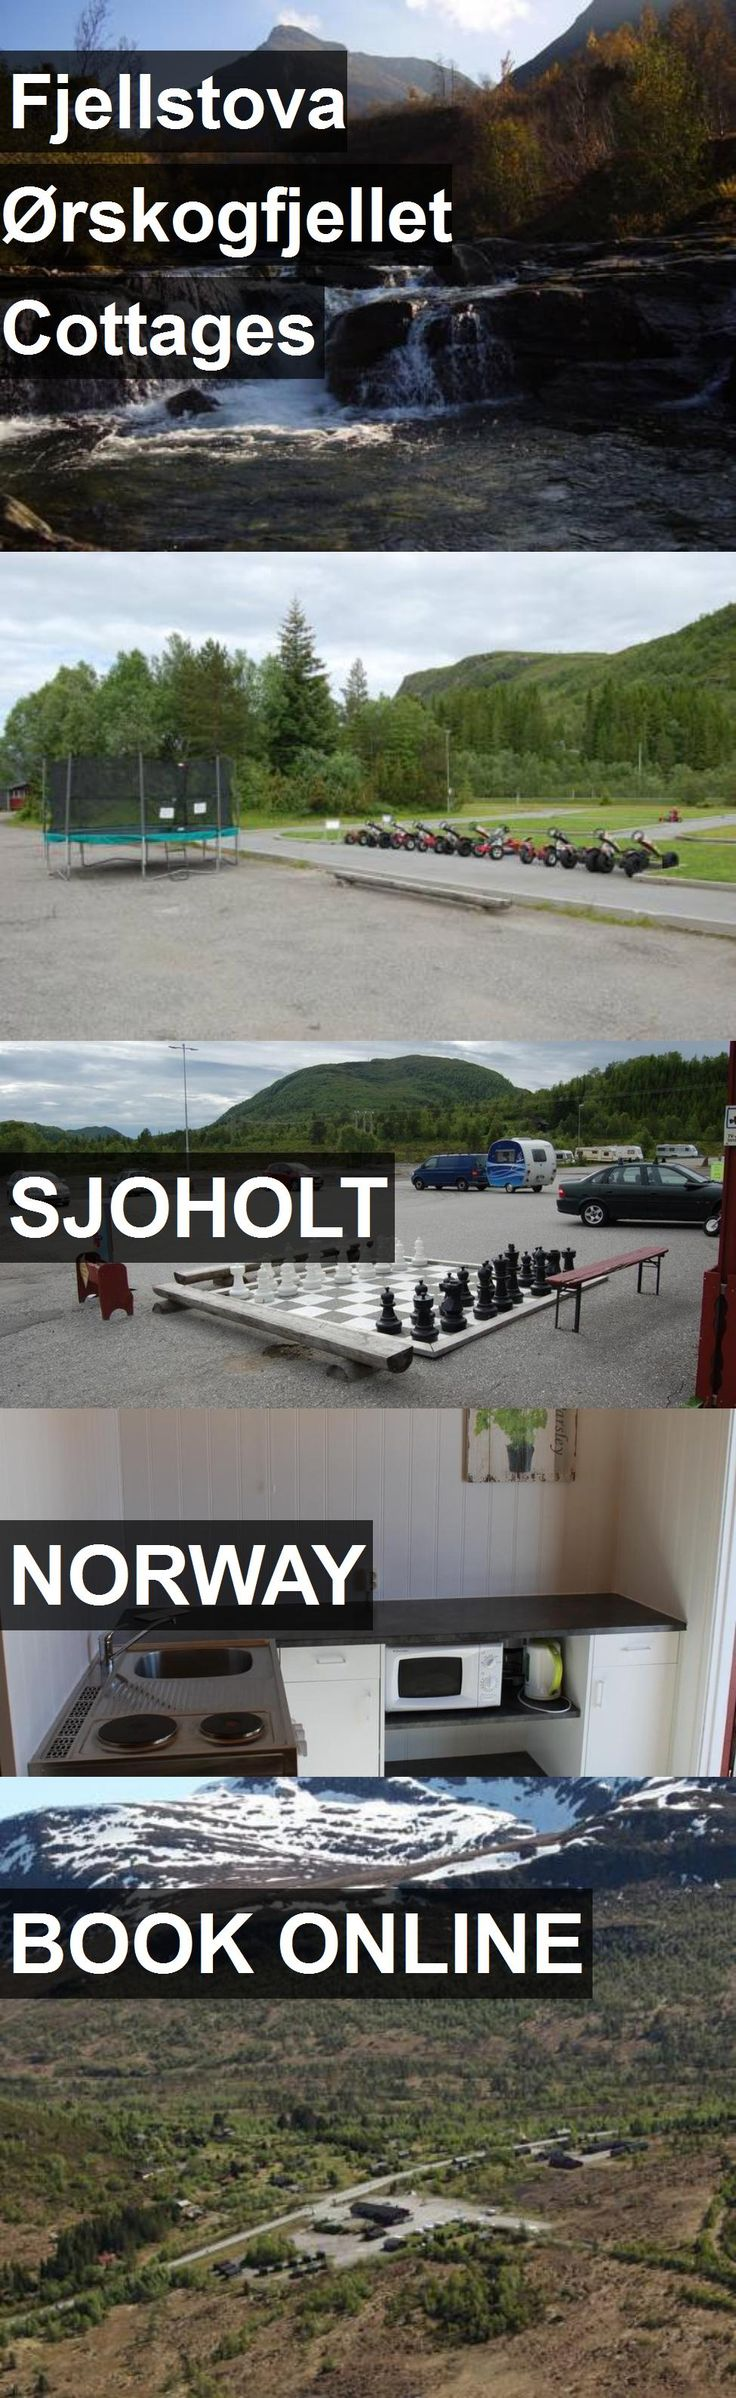 Hotel Fjellstova Ørskogfjellet Cottages in Sjoholt, Norway. For more information, photos, reviews and best prices please follow the link. #Norway #Sjoholt #travel #vacation #hotel